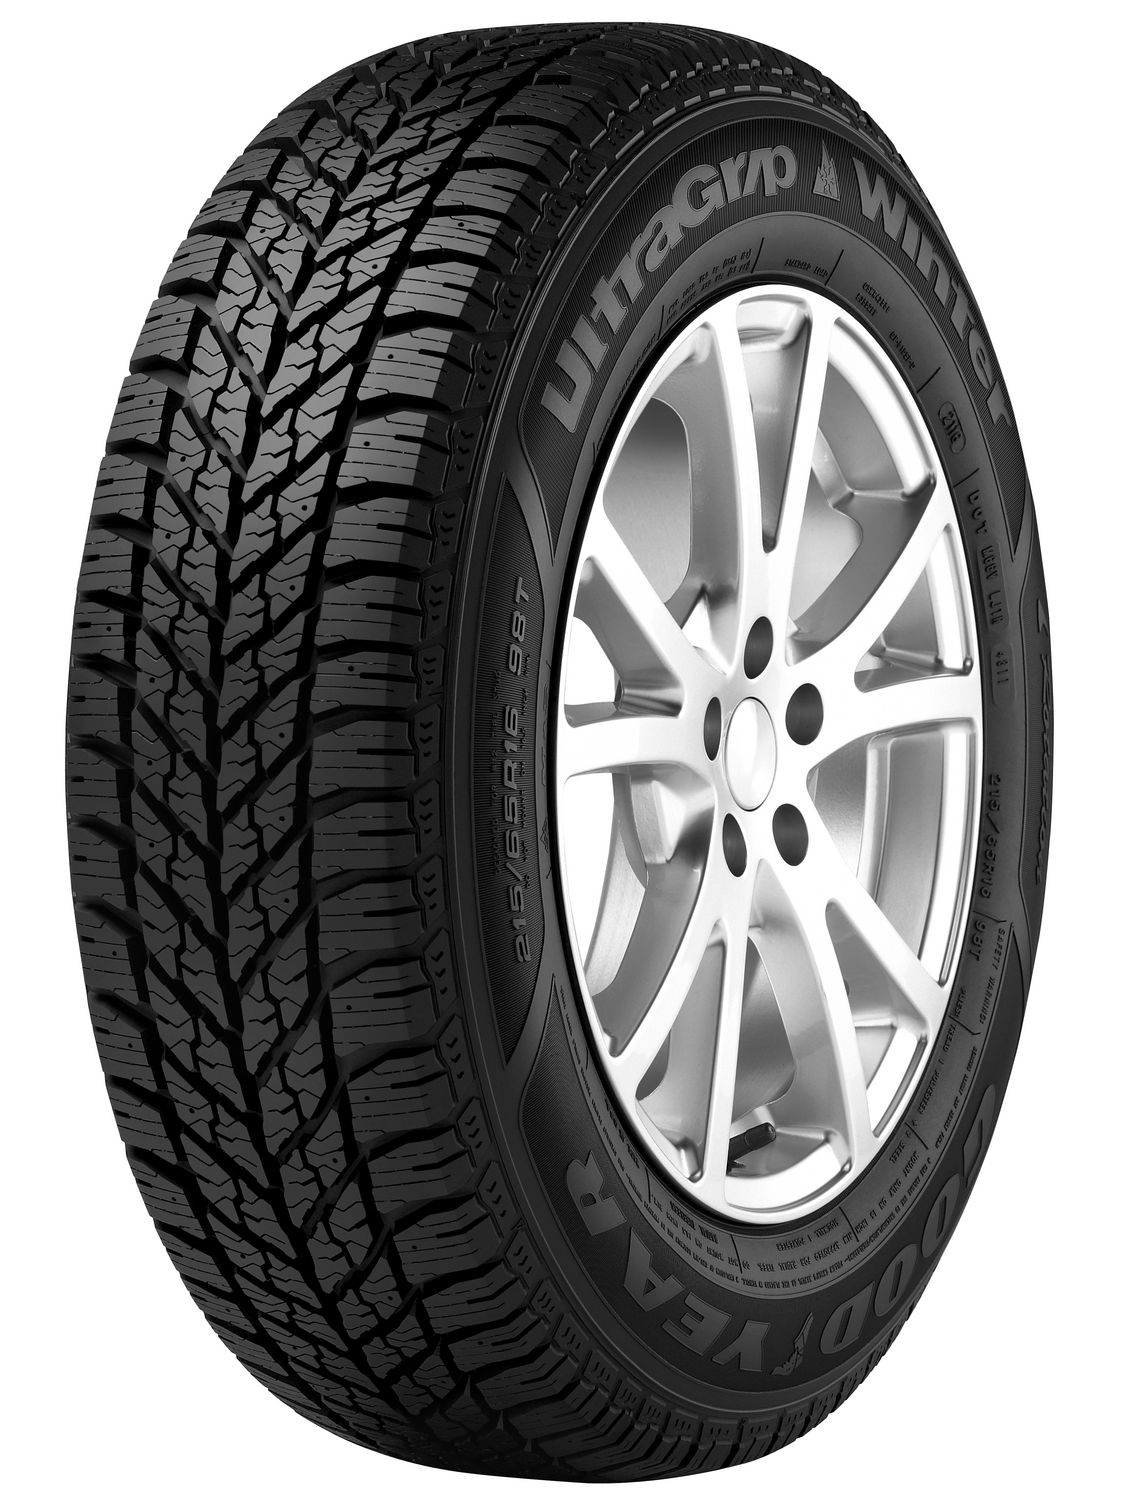 205 55R16 Winter Tires >> Goodyear 205/55R16 Ultra Grip Winter | Walmart Canada